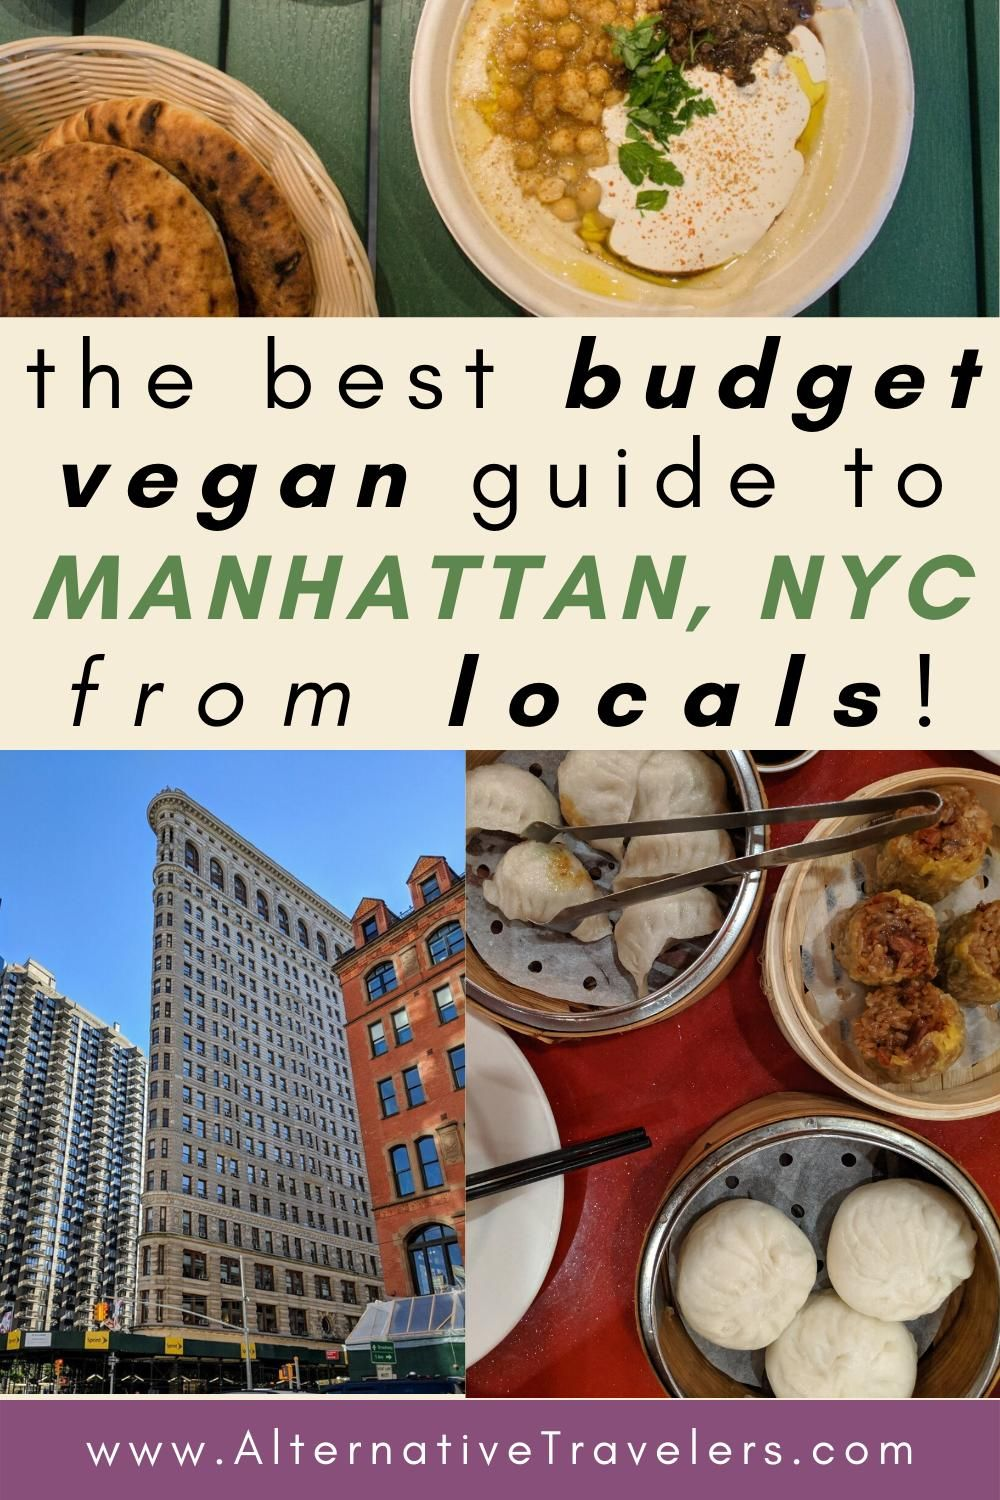 Pin On Vegan Travel U S And Canada